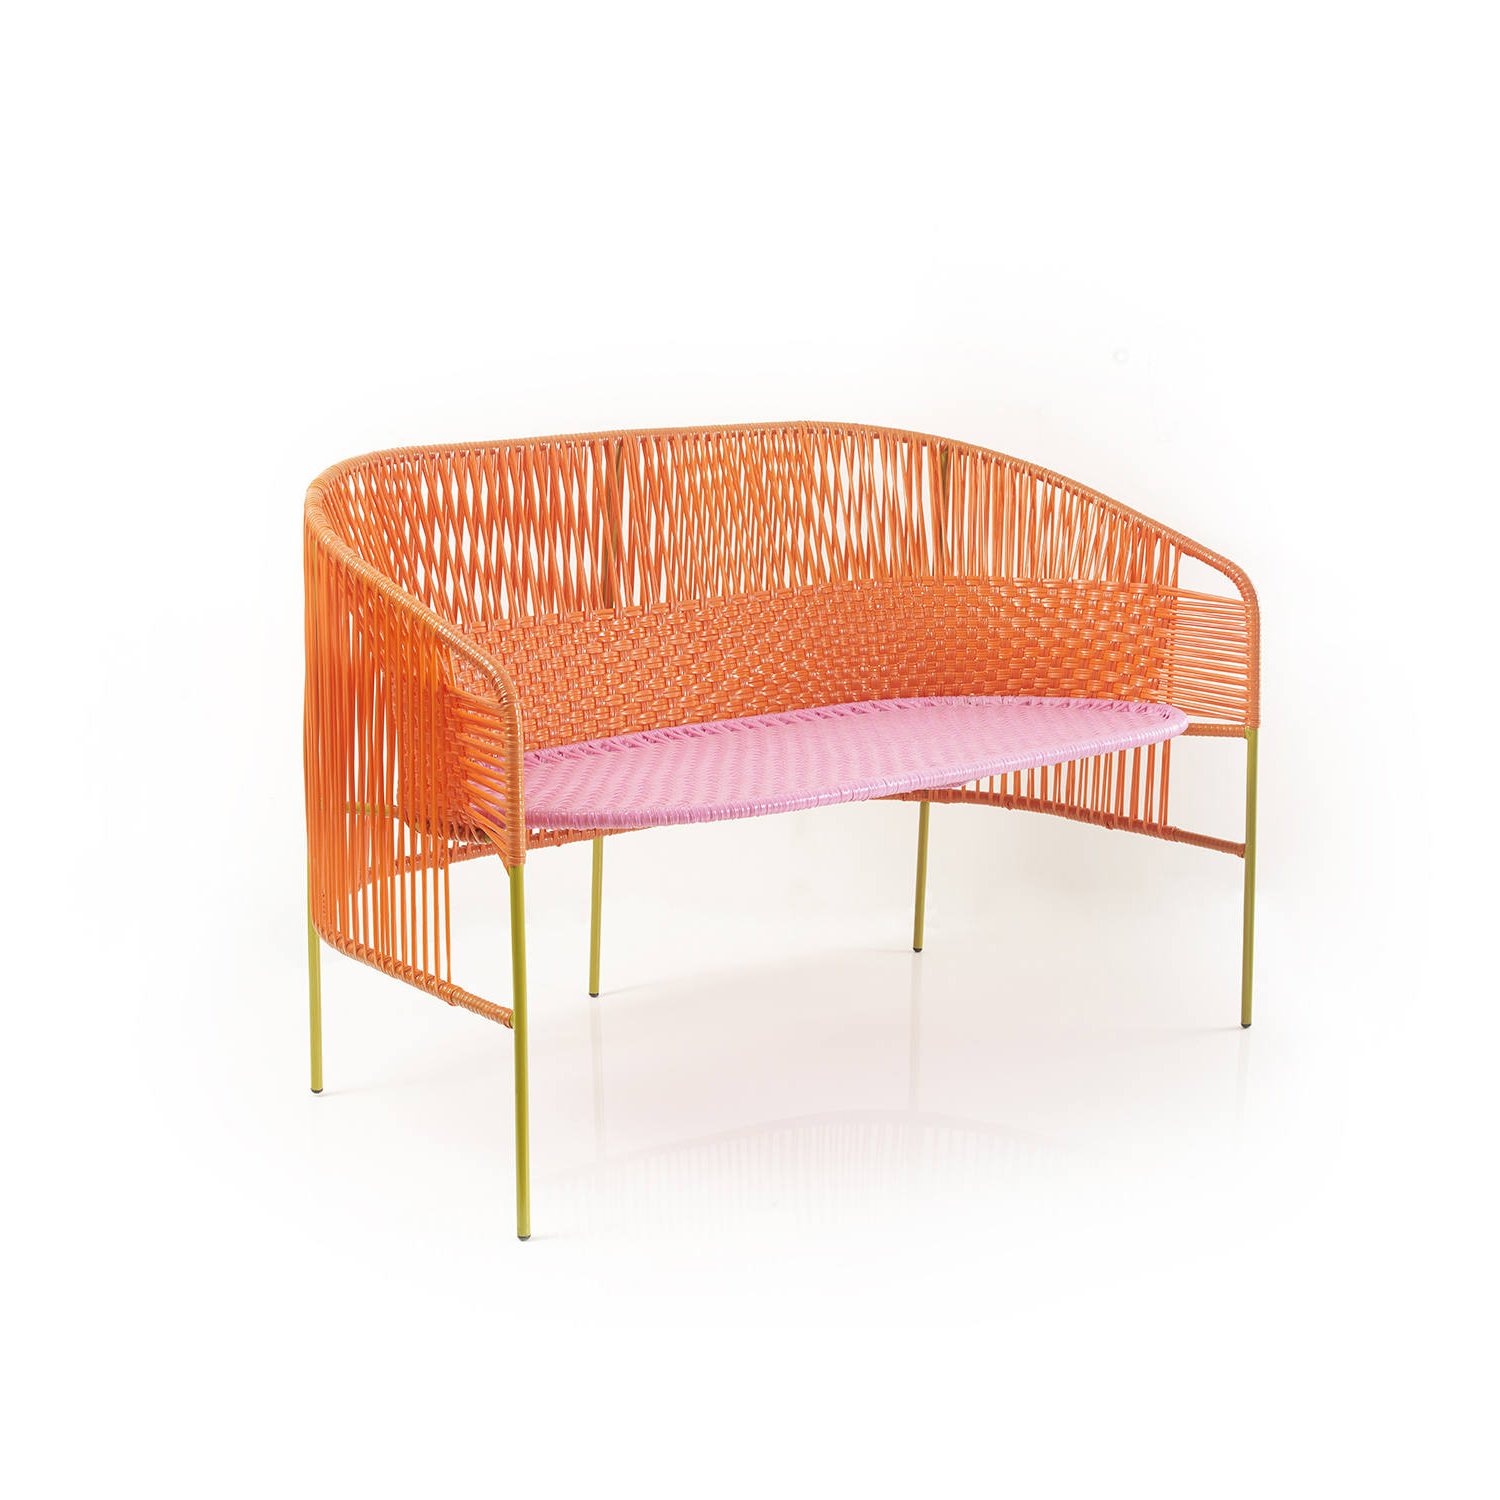 Caribe - 2 Seater Bench